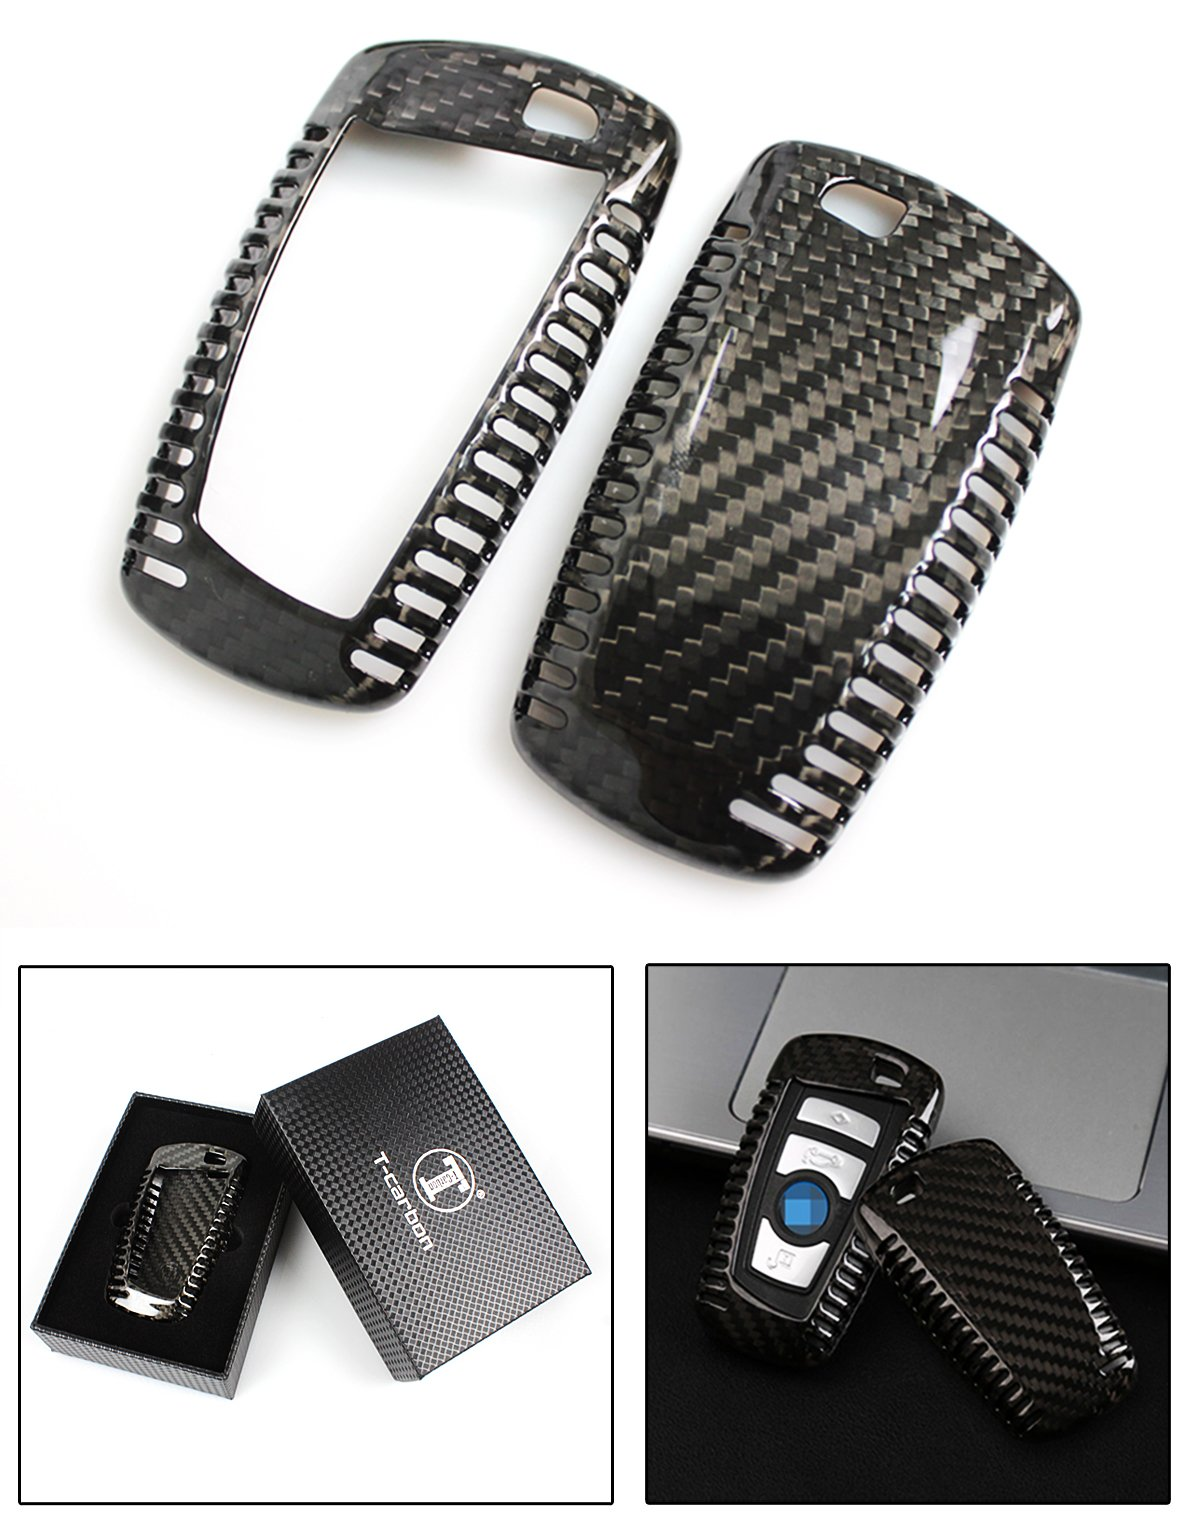 Luxury Carbon Fiber Key Protective Hard Case Cover for BMW Leyless Entry Smart Fob